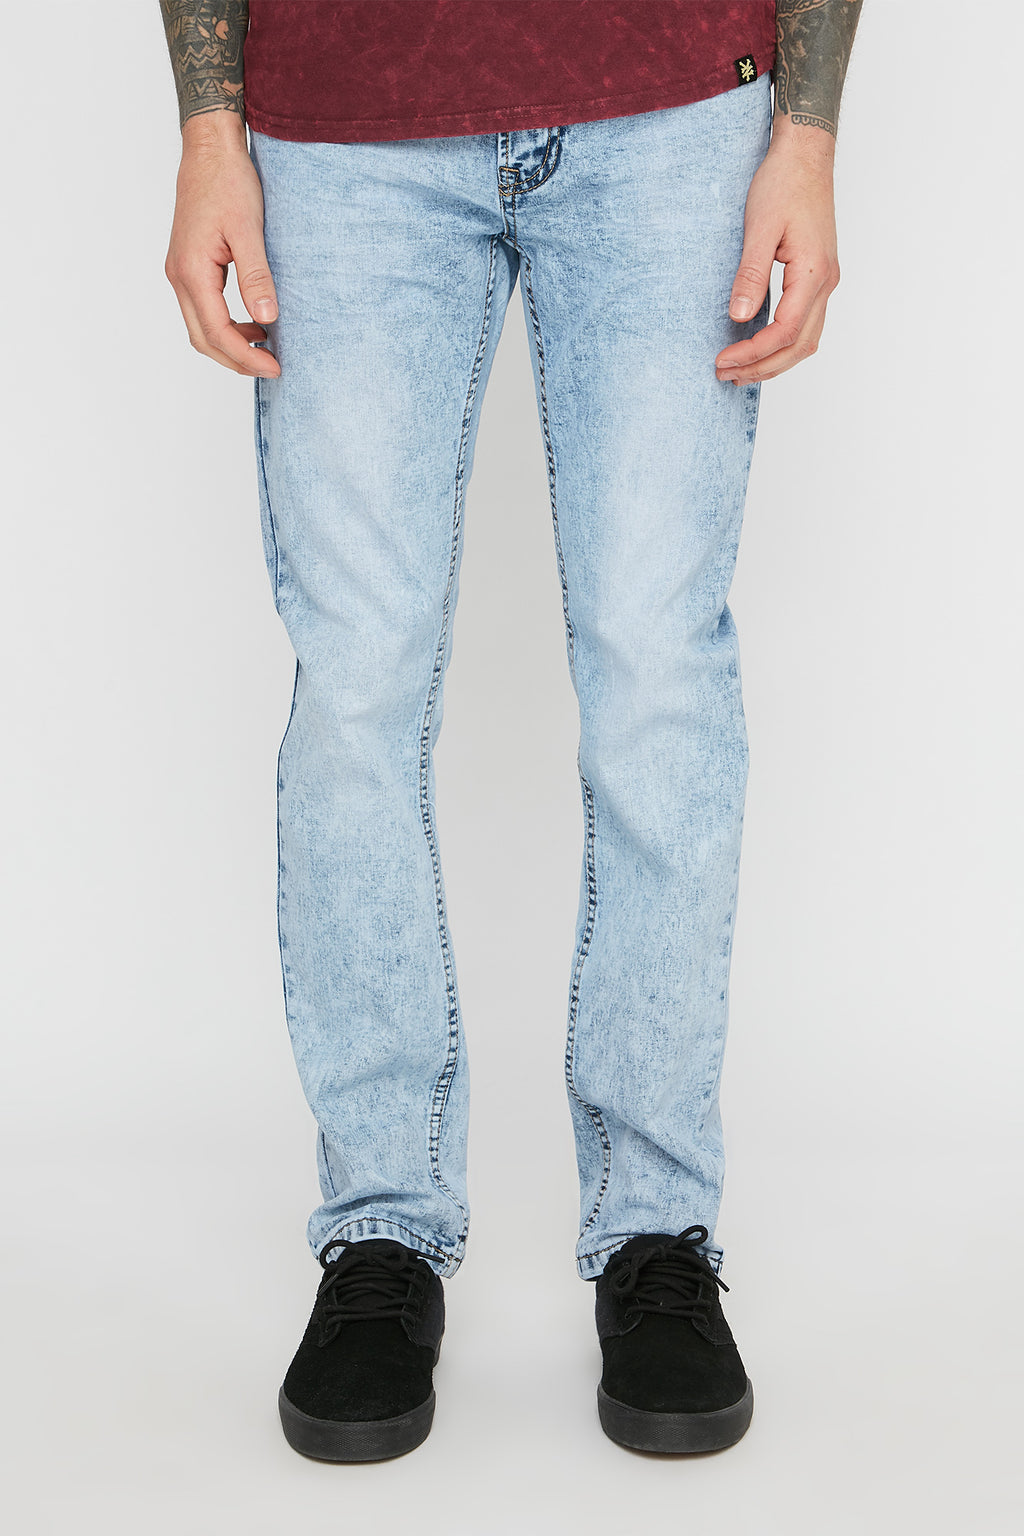 Zoo York Mens Light Wash Slim Jeans